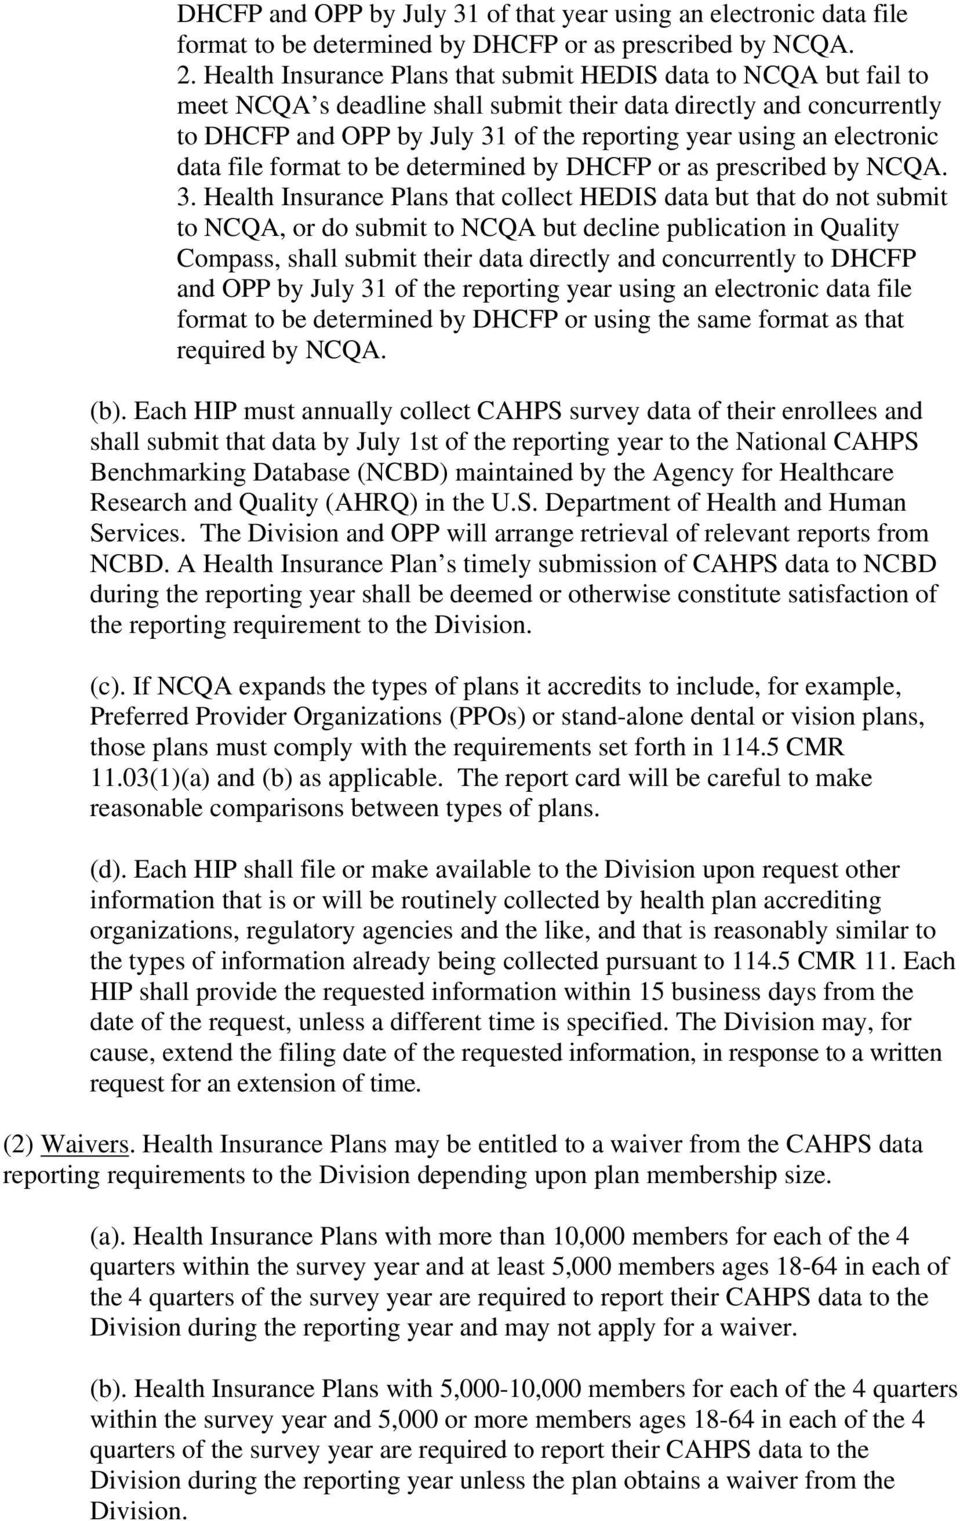 electronic data file format to be determined by DHCFP or as prescribed by NCQA. 3.